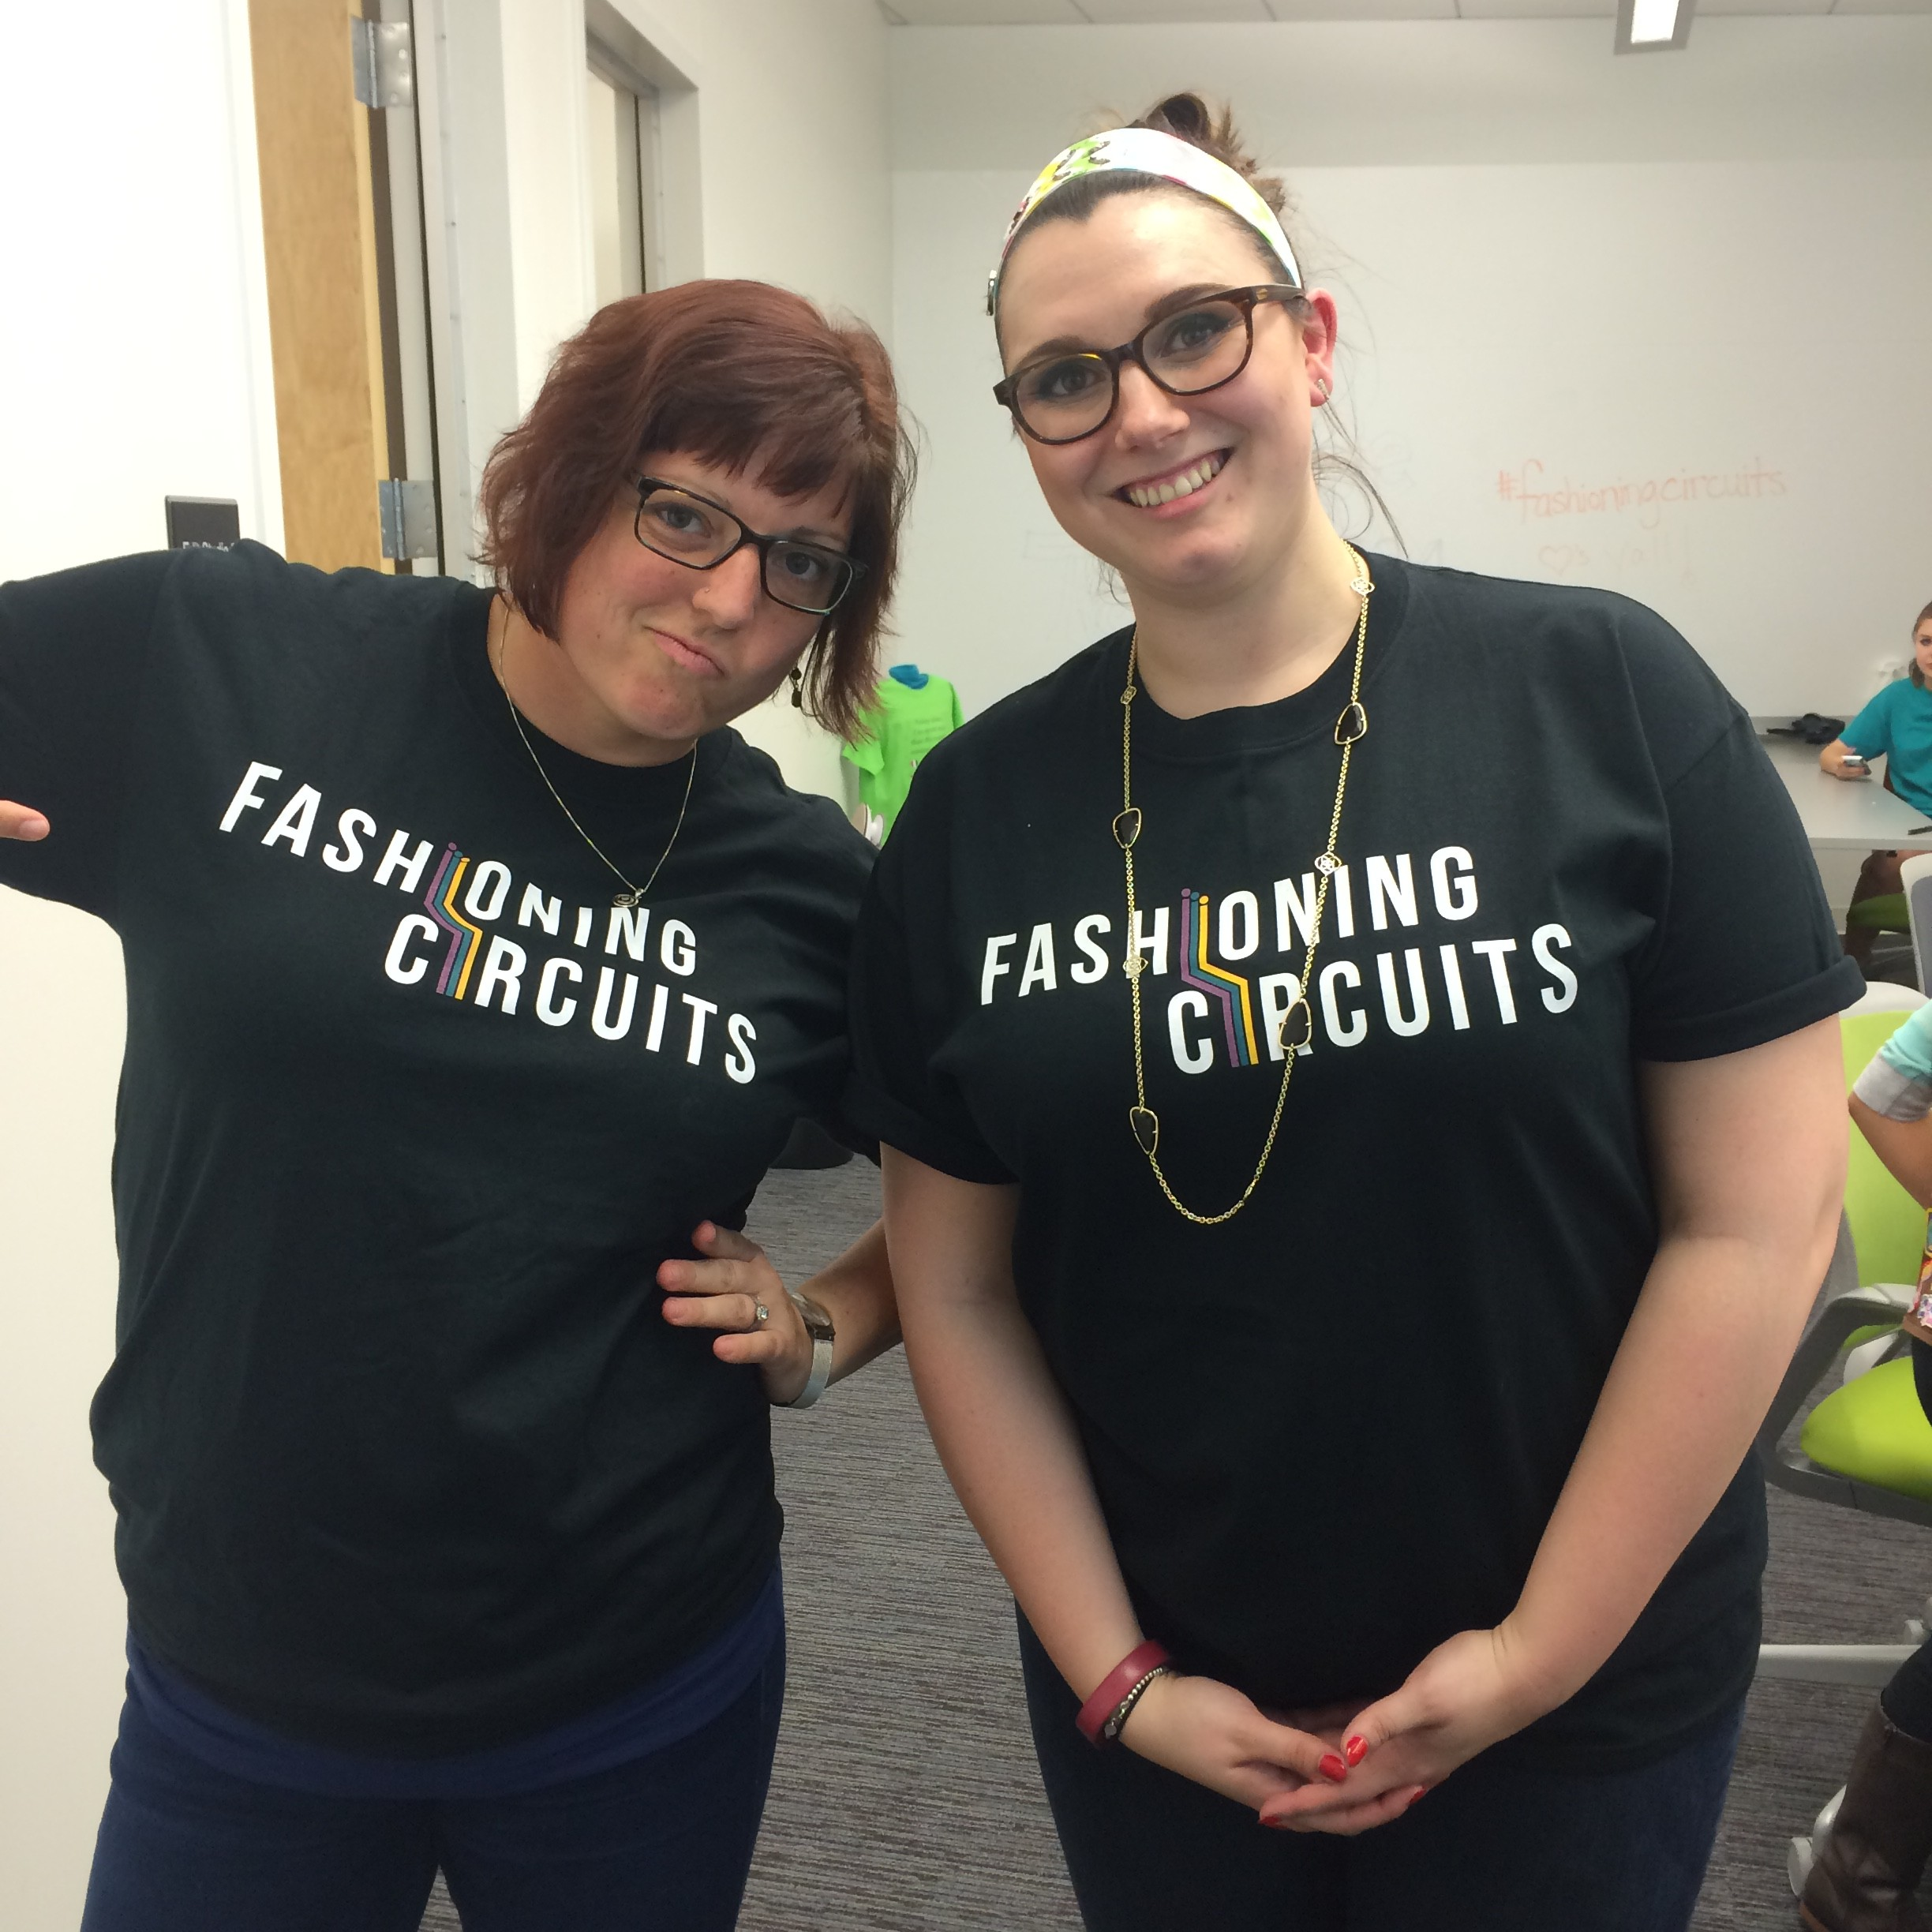 Laura Pasquini and Patti McLetchie model our new Fashioning Circuits t-shirts before the Brownies arrive.